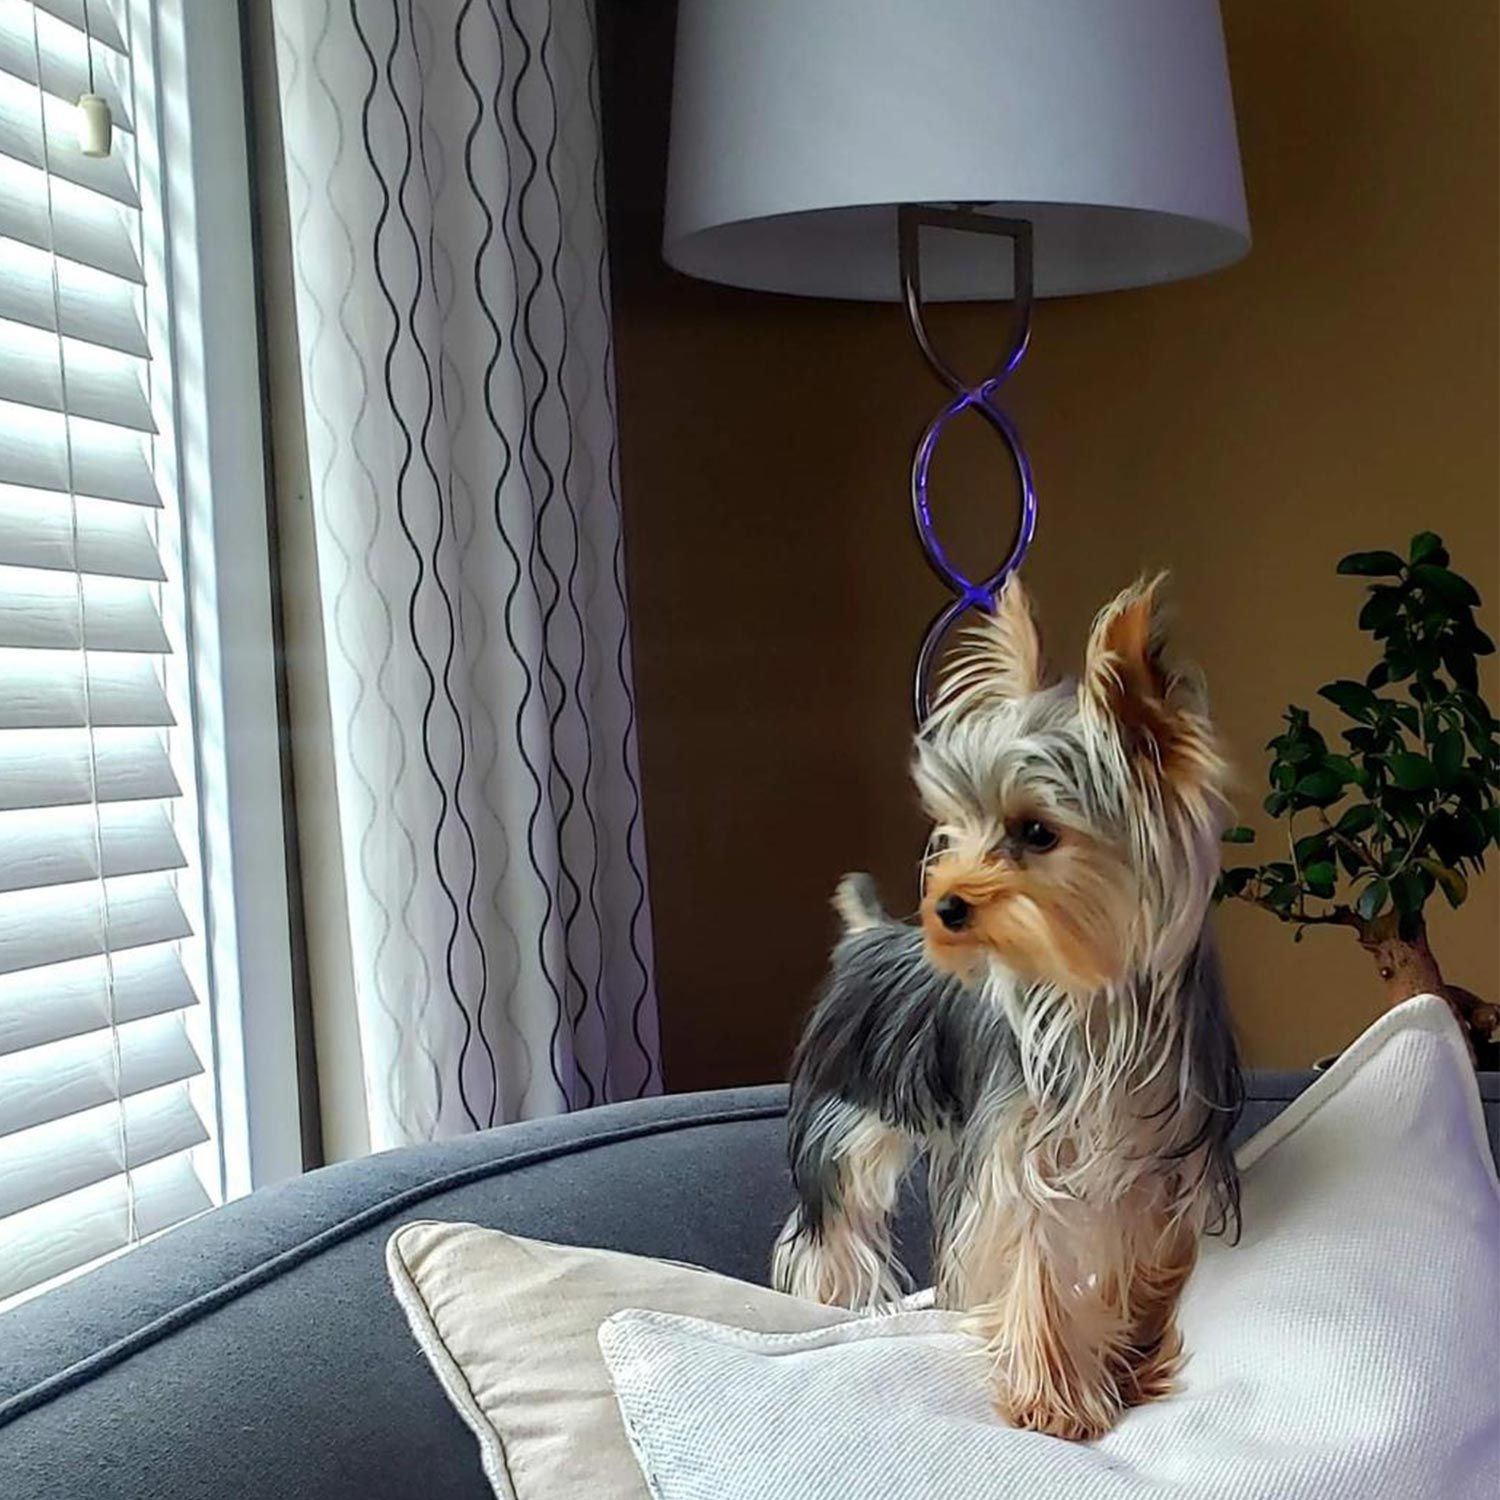 Daniel C. sent a picture of his stunning one-year-old Yorkshire Terrier Pancho on the couch, his favorite spot, looking out the window.